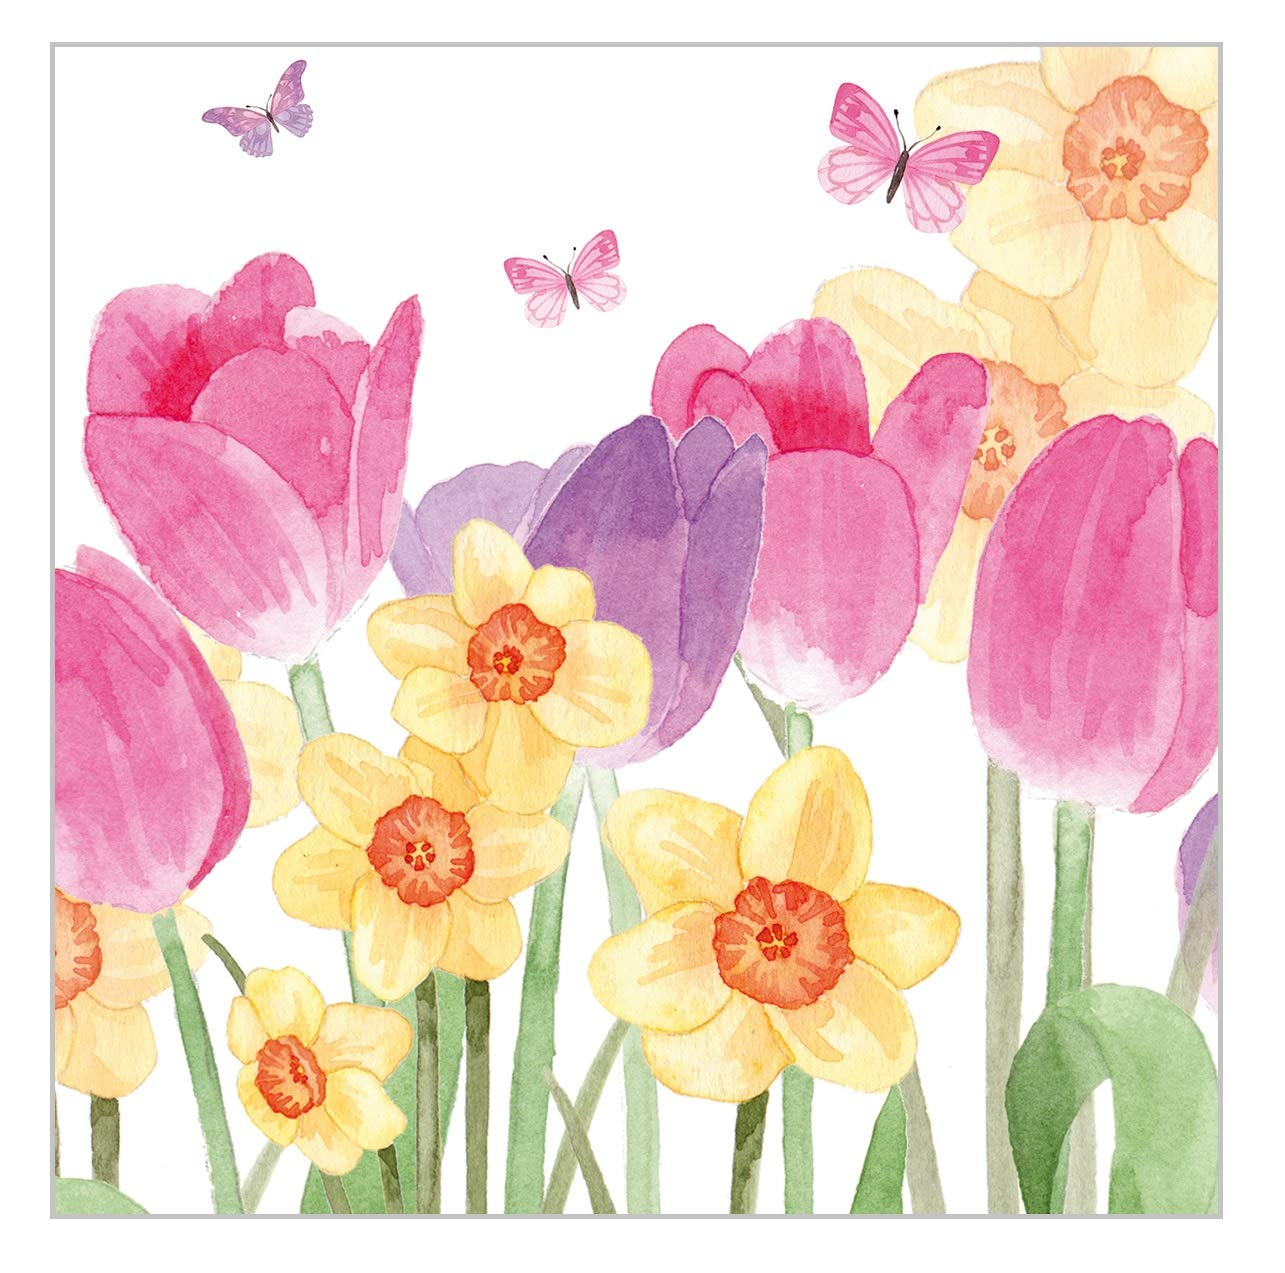 4 x Single Paper Napkin Colorful Spring Flowers Decoupage and Crafting Party 43